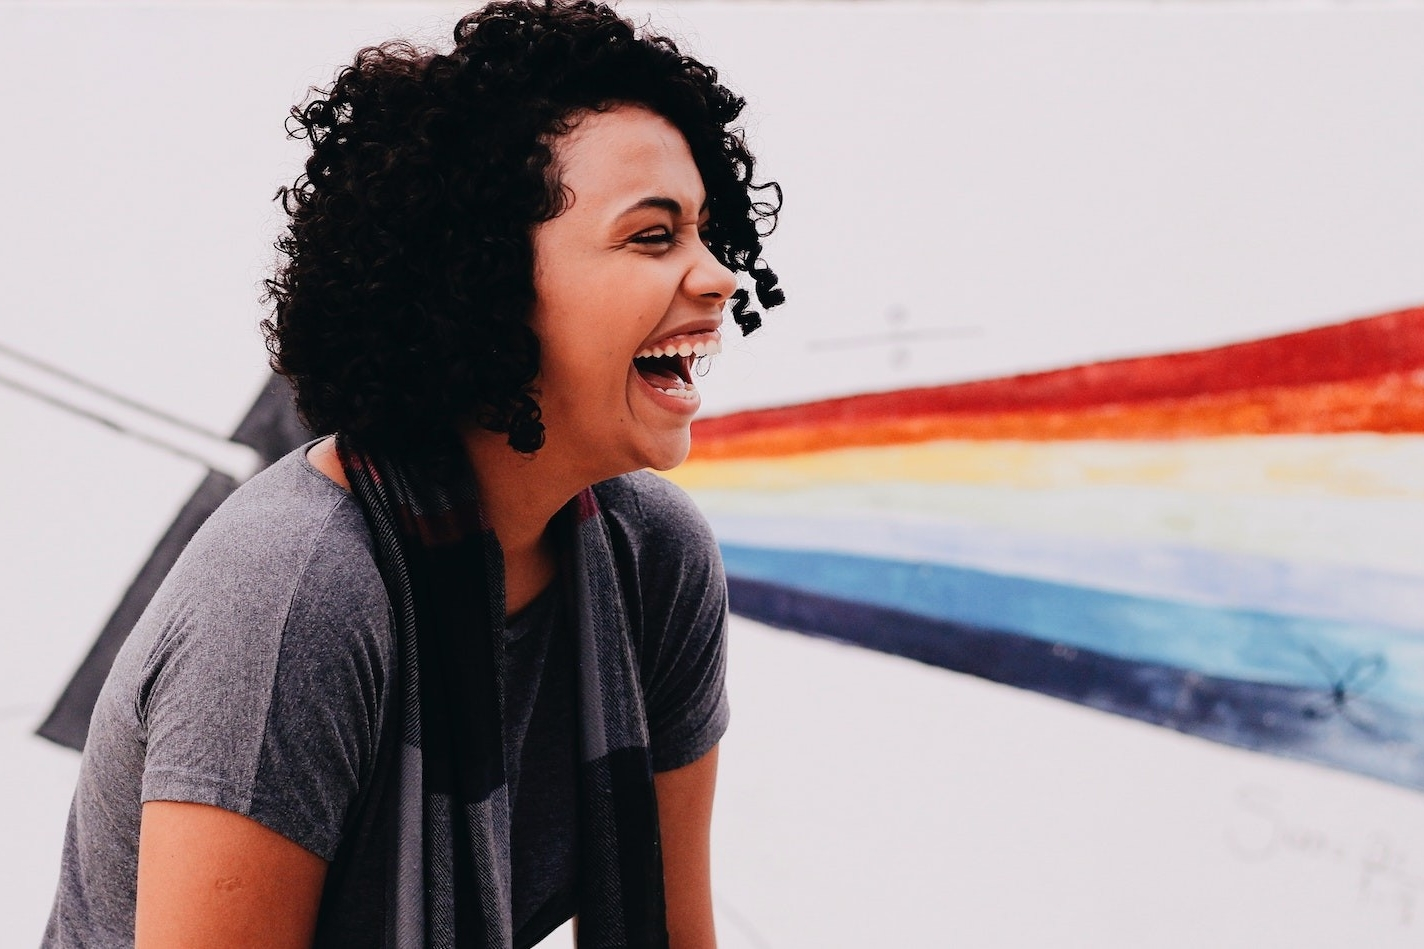 A woman laughs in front of a colourful mural